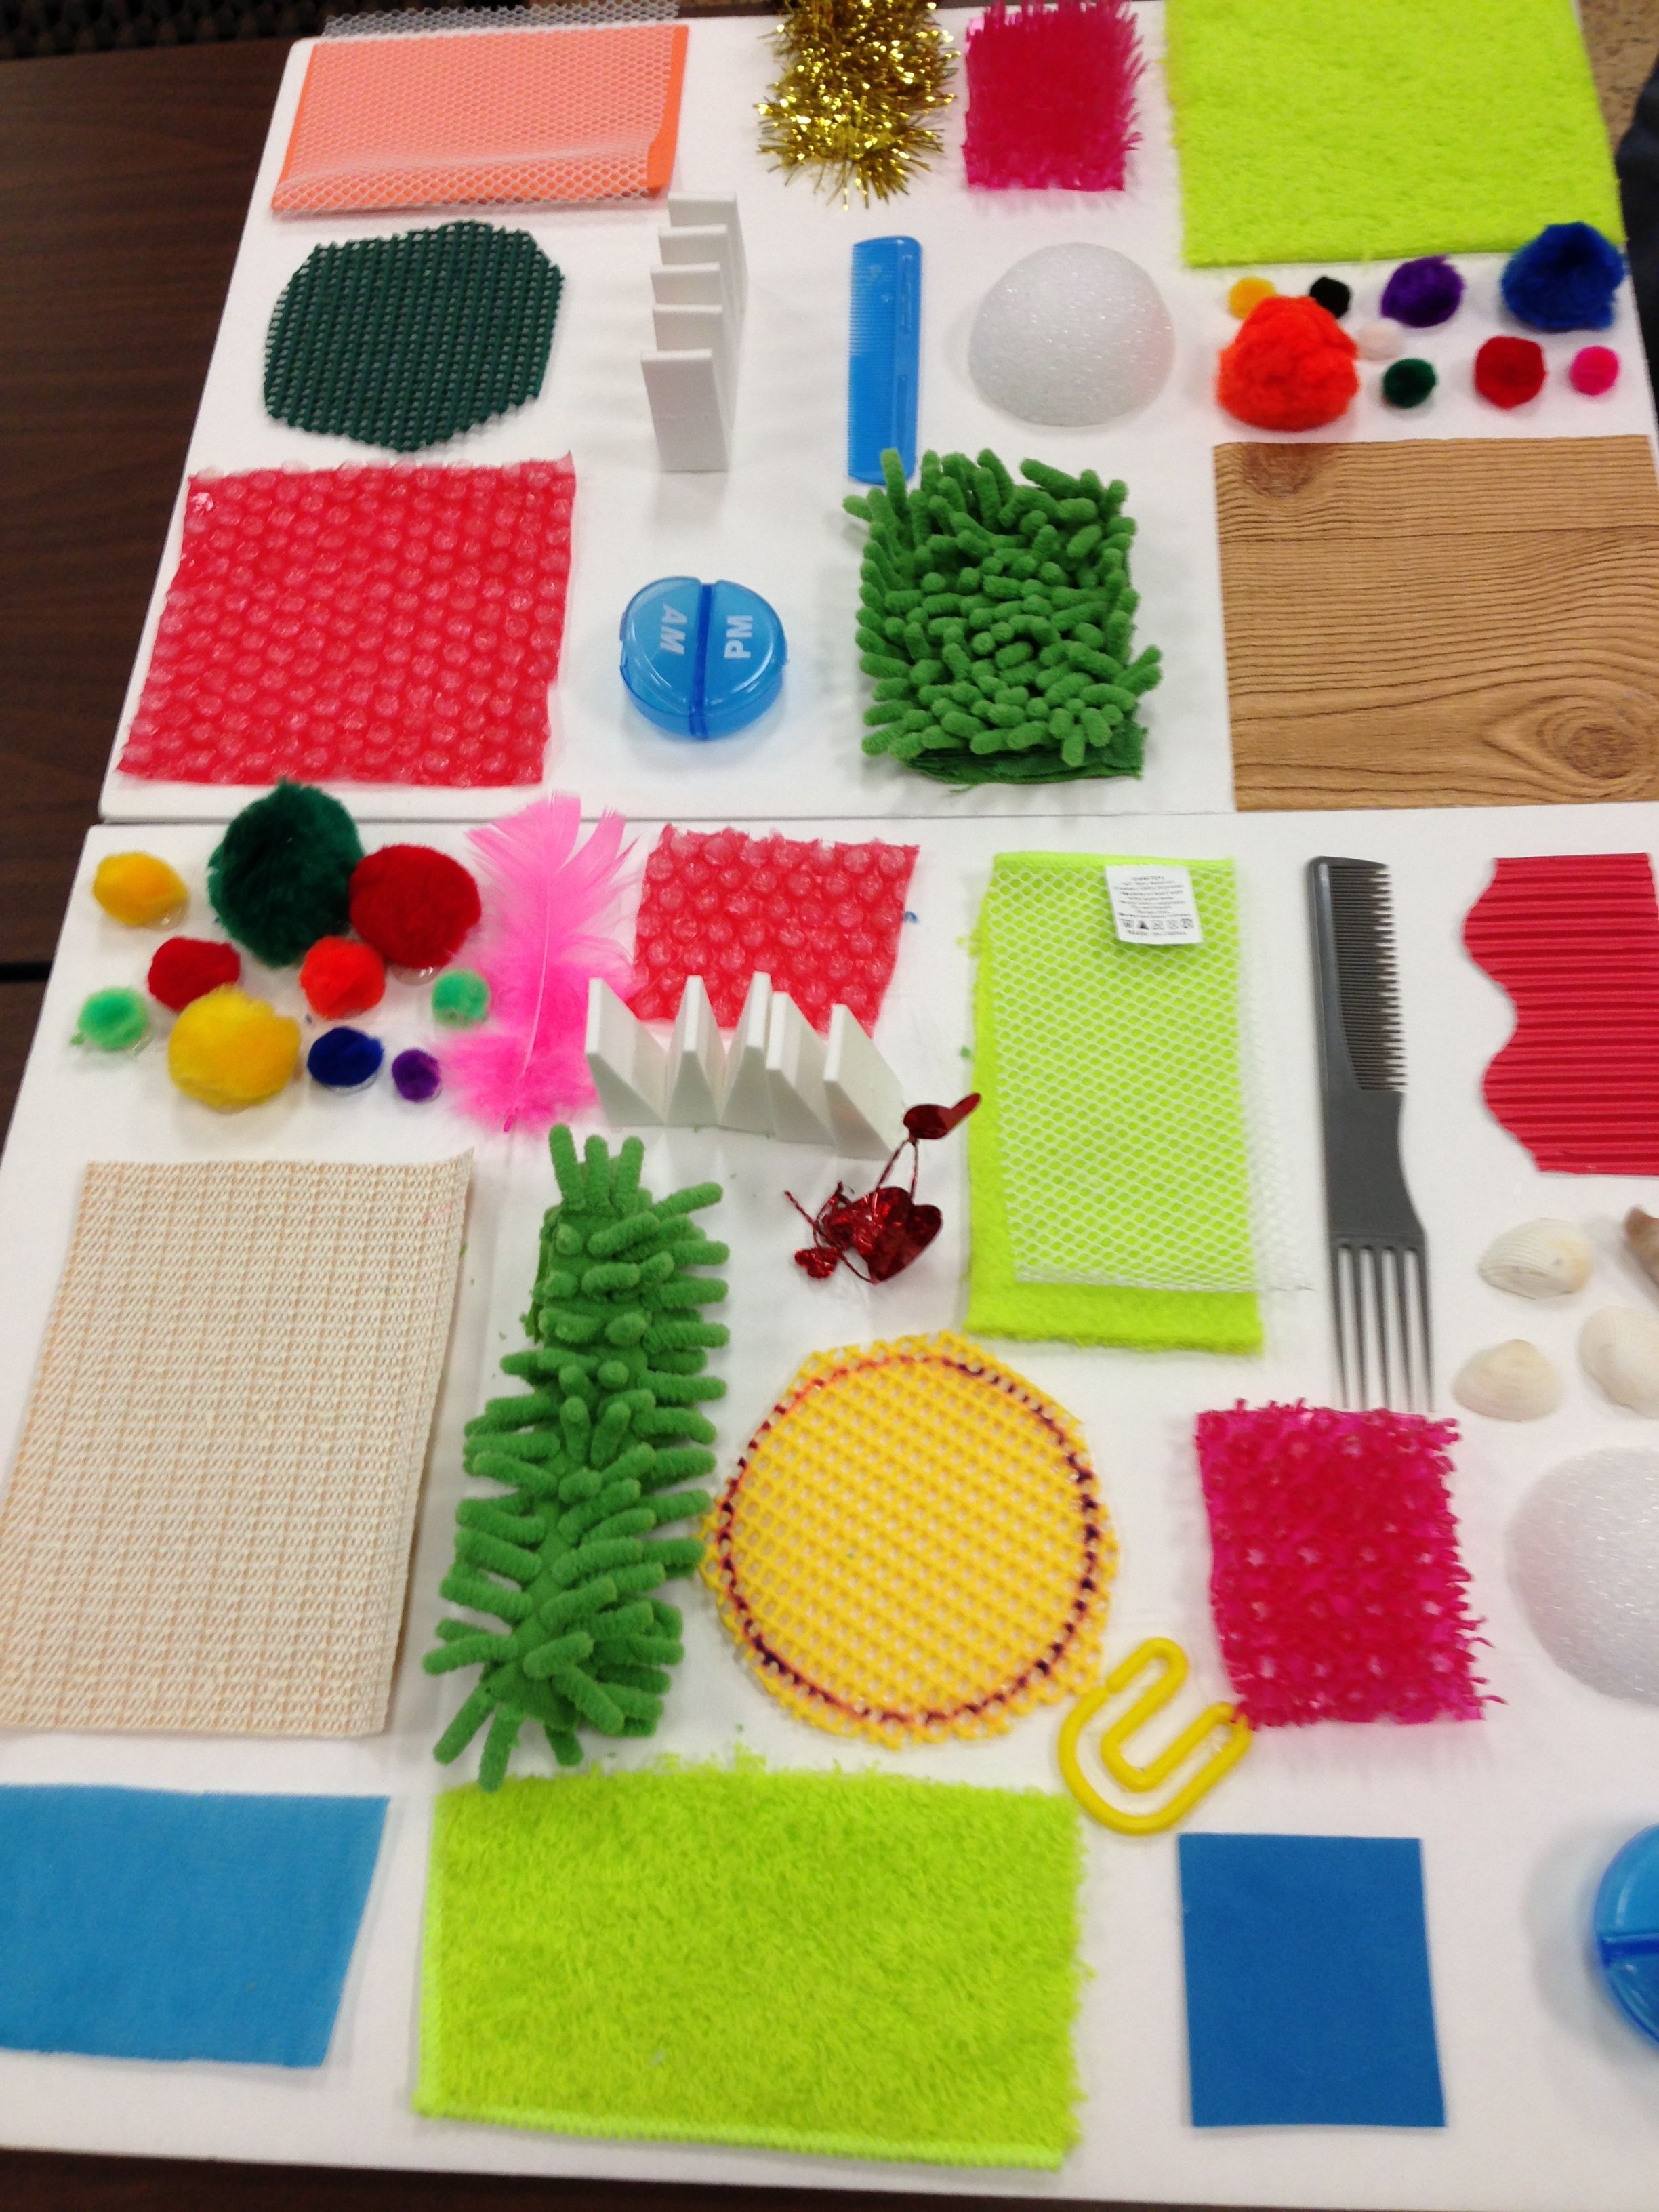 This Texture Board Offers Interesting Tactile Exploration